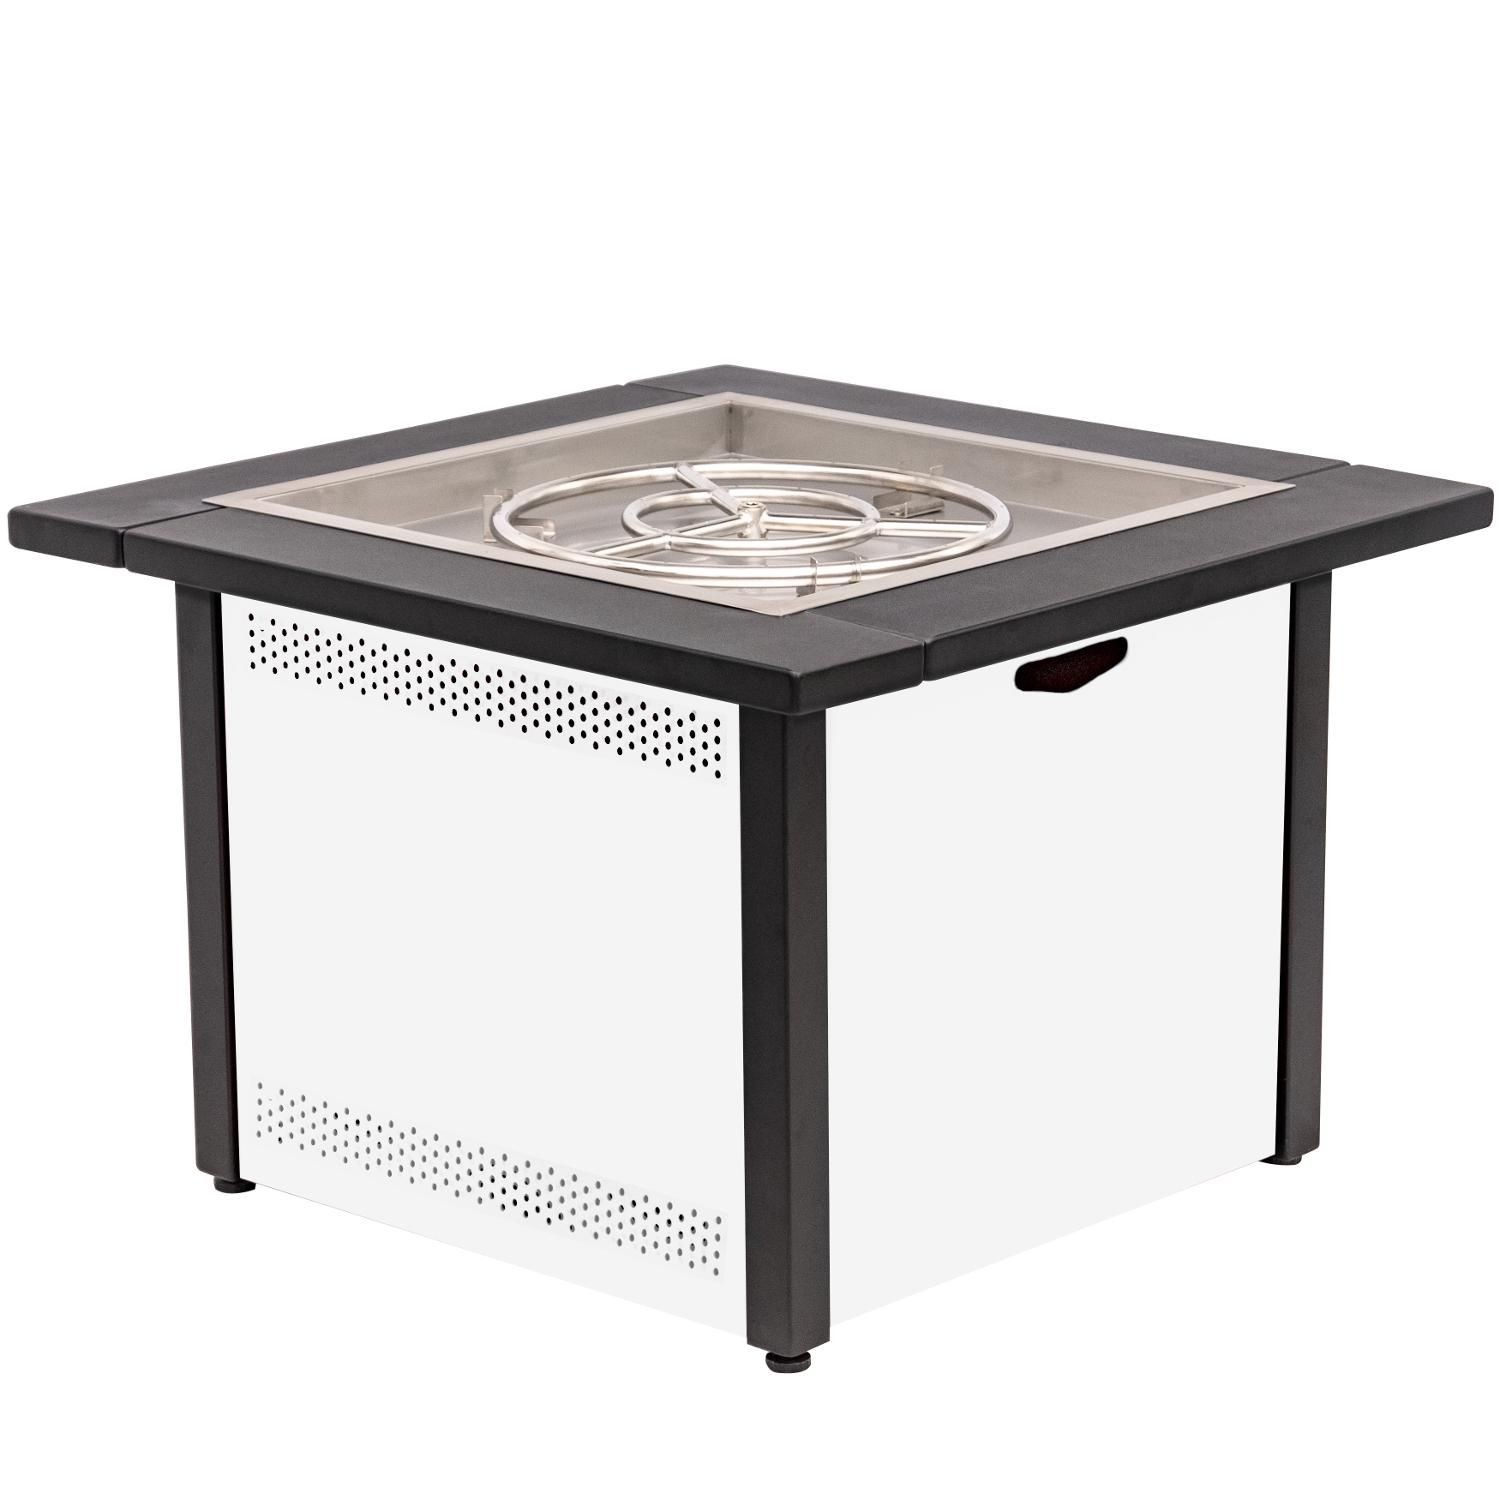 Lakeview 36 Square Propane Gas Fire Pit Table W 24 Pan And Burner Textured White Ch 36fp A Lp Tw Fire Pit Table Gas Fire Pit Table Natural Gas Fire Pit